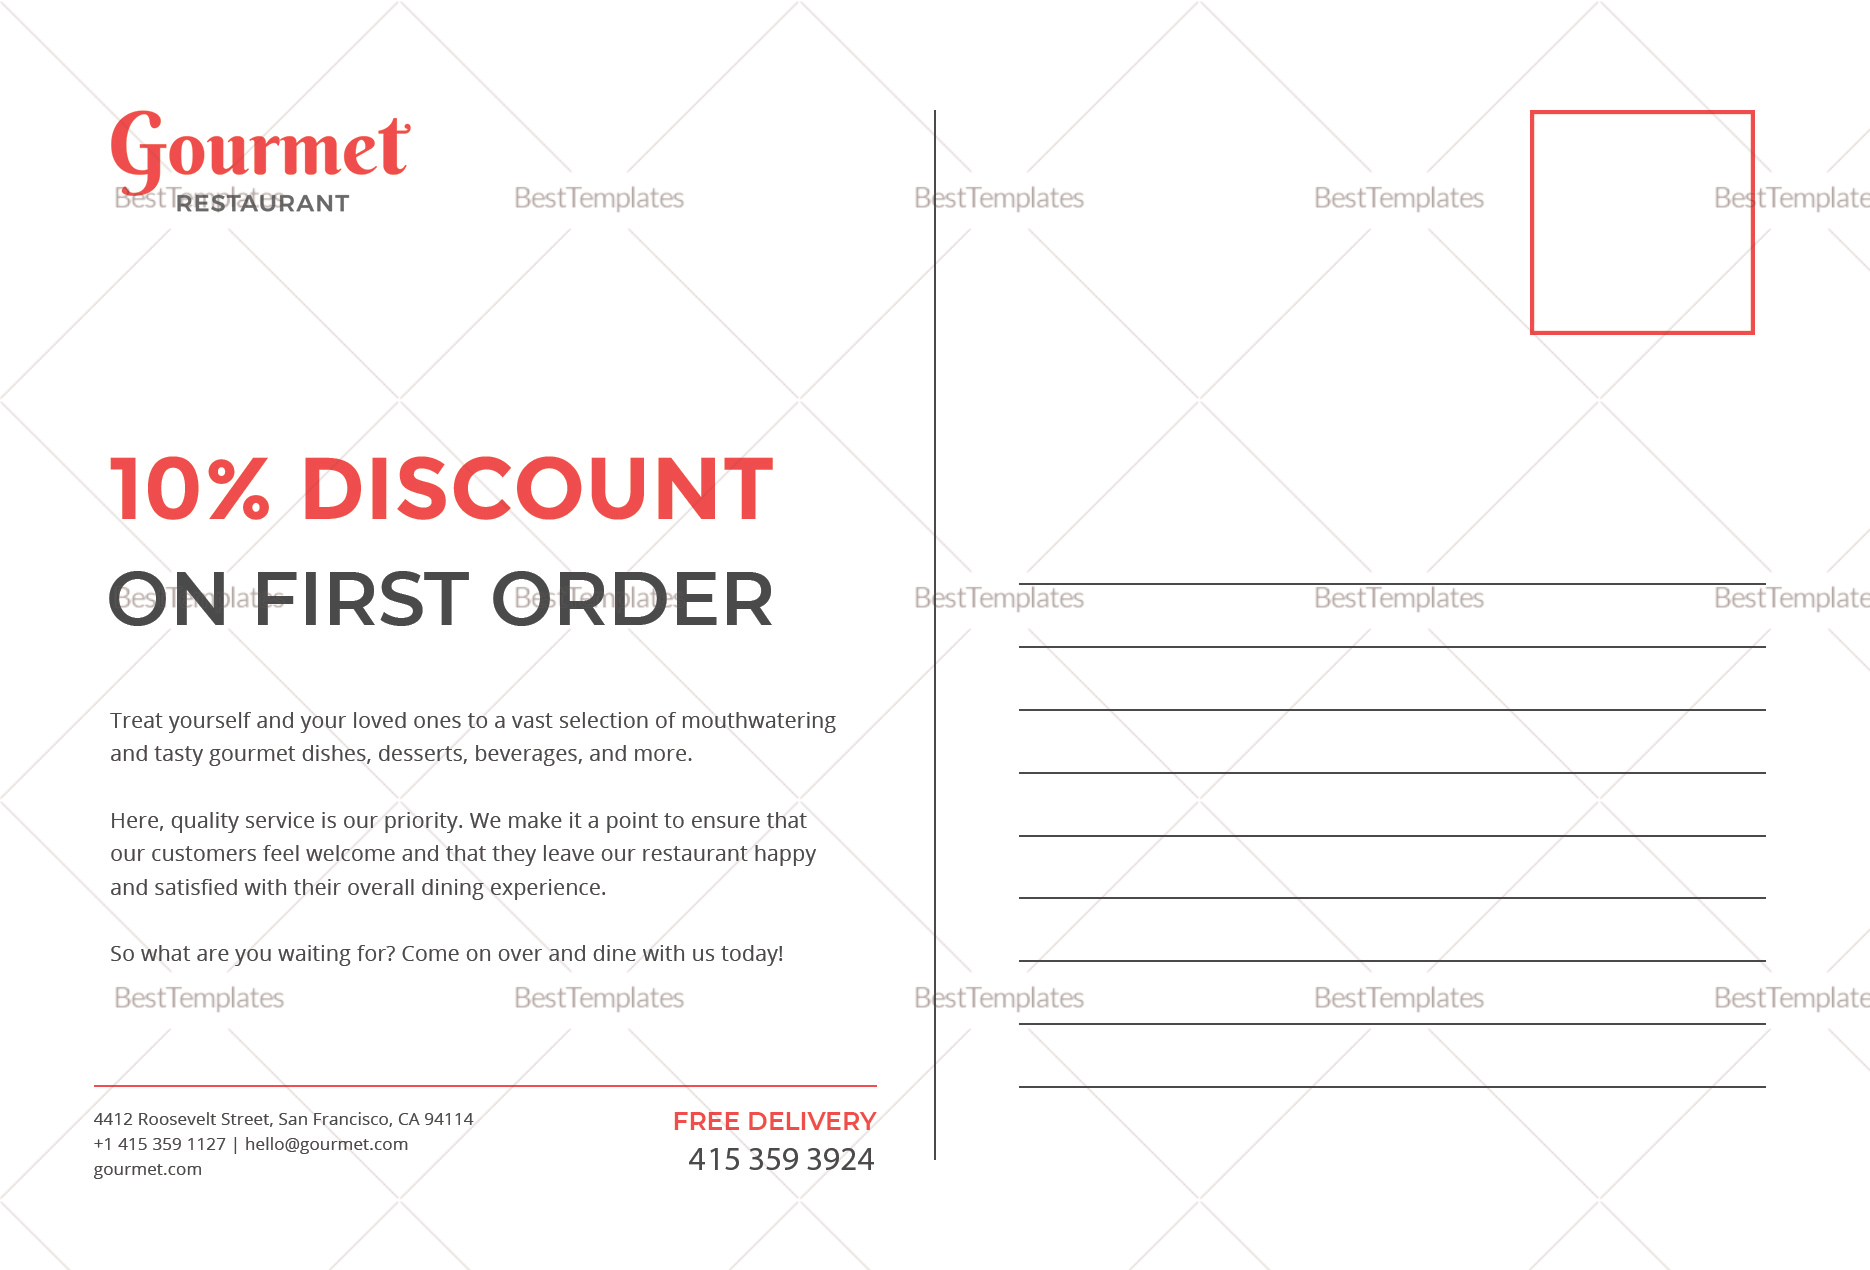 Restaurant Postcard Back Template